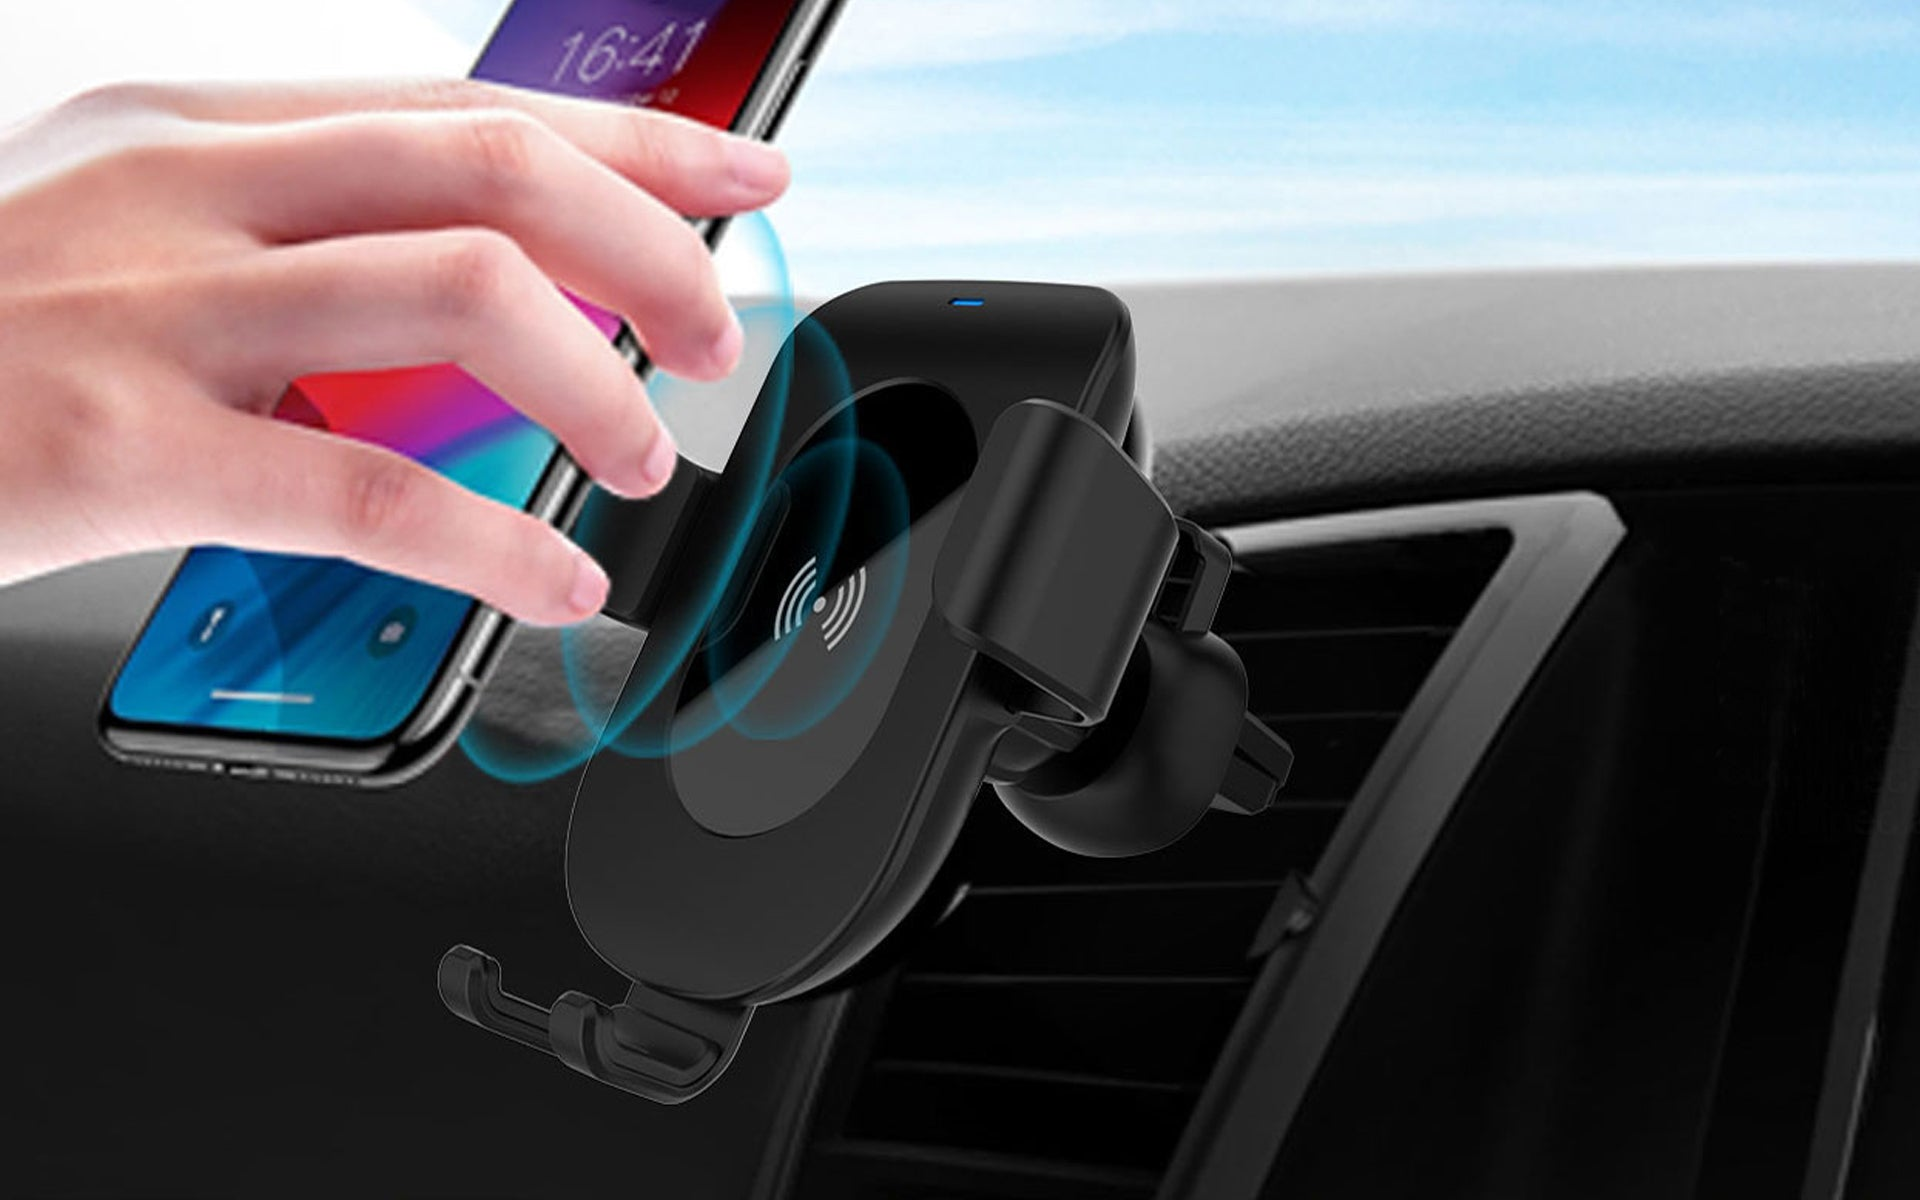 Loowoko-Wireless-Car-Charger-L-IC-045_06